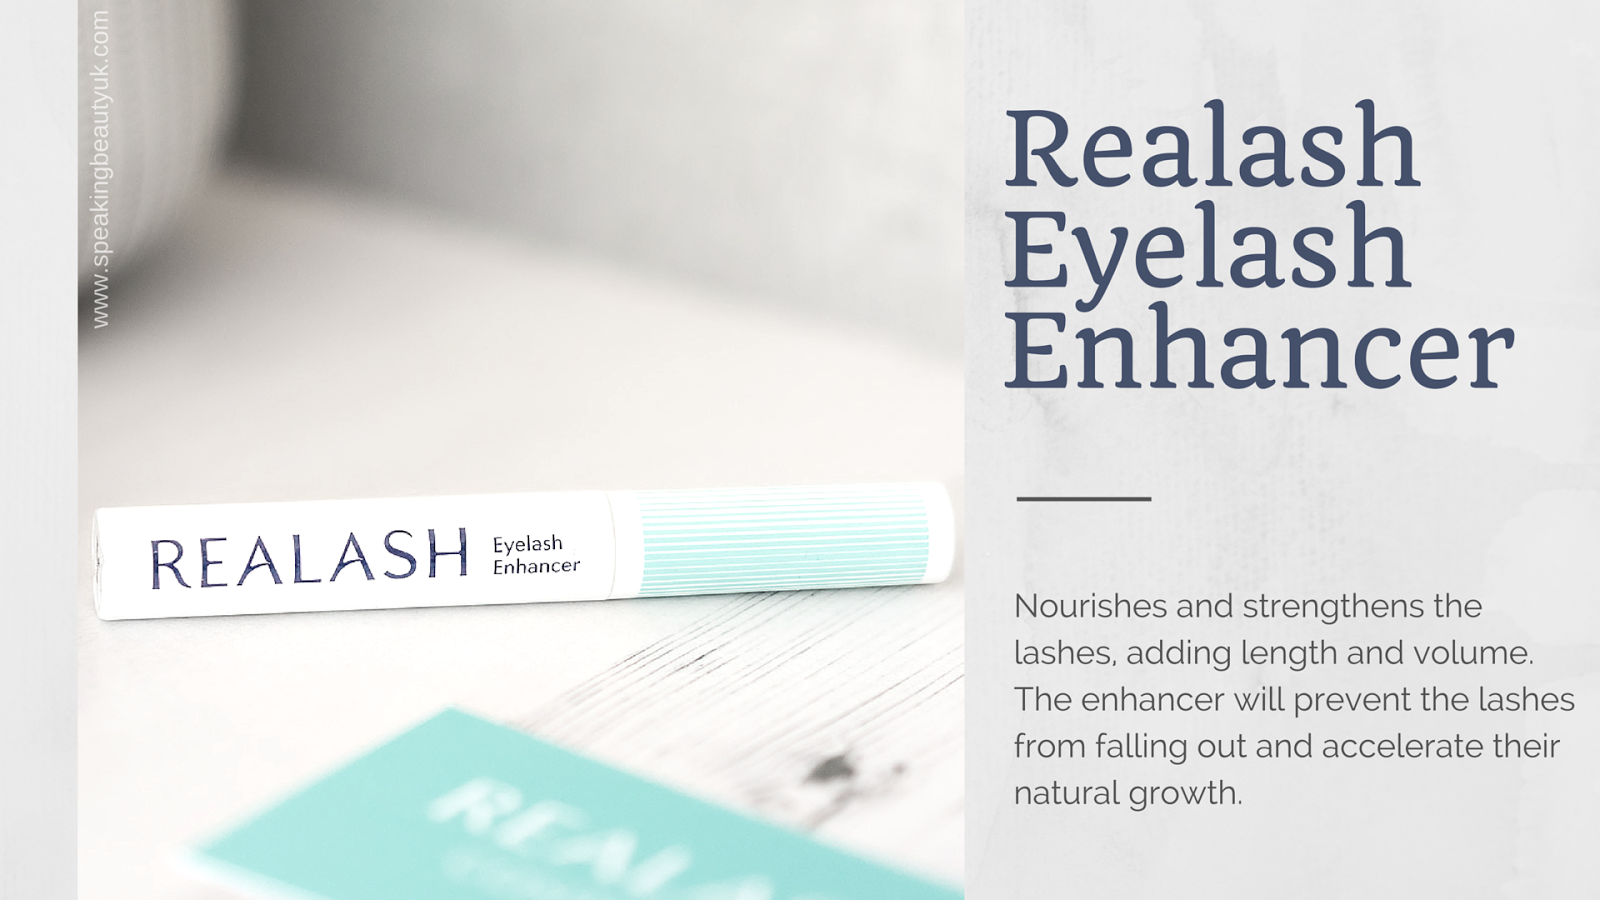 Realash Eyelash Enhancer Giveaway